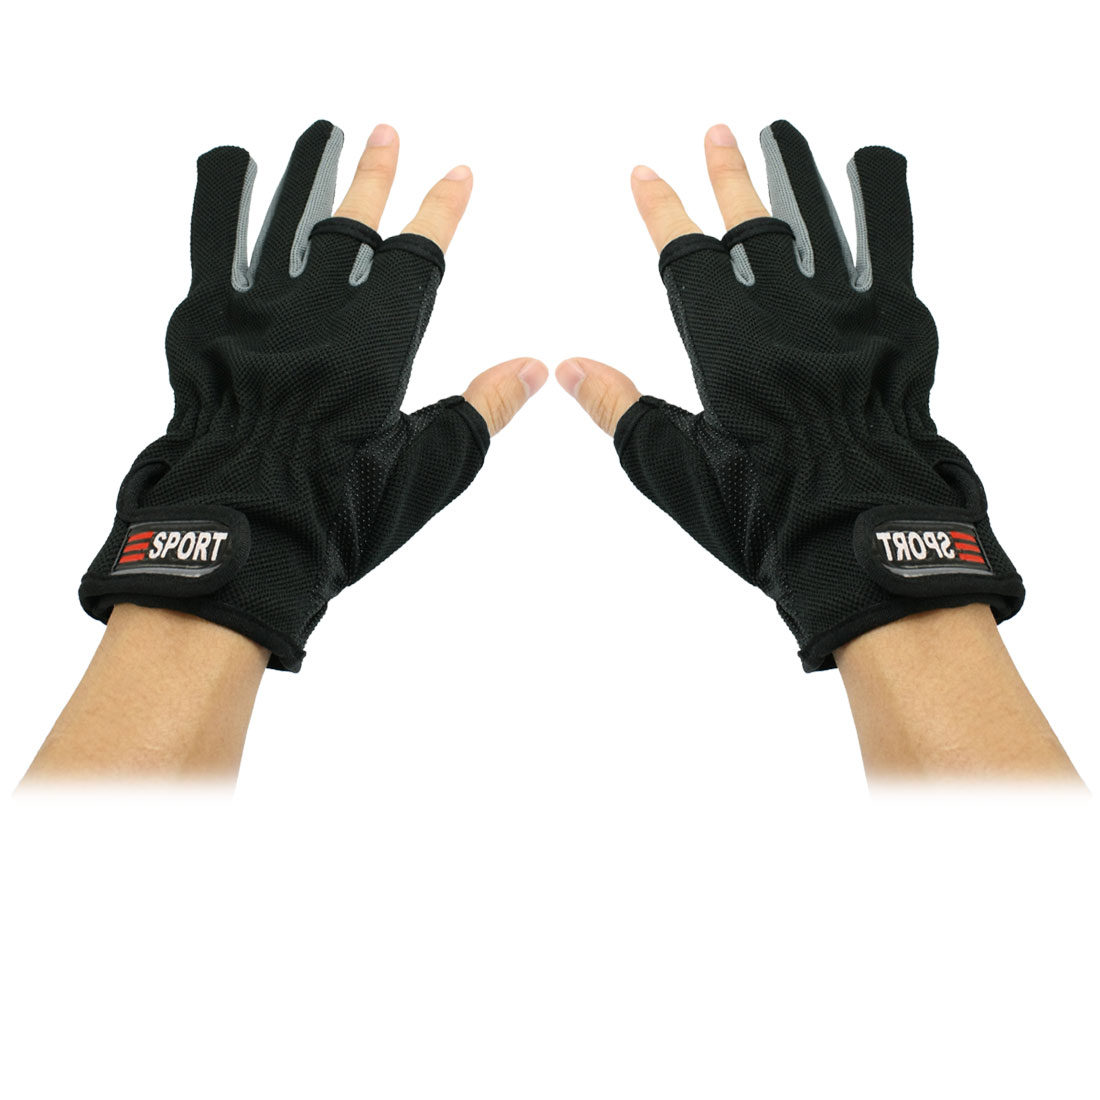 Pair Loop Hook Closure Wrist 3 Half 2 Full Fingers Sport Gloves Black